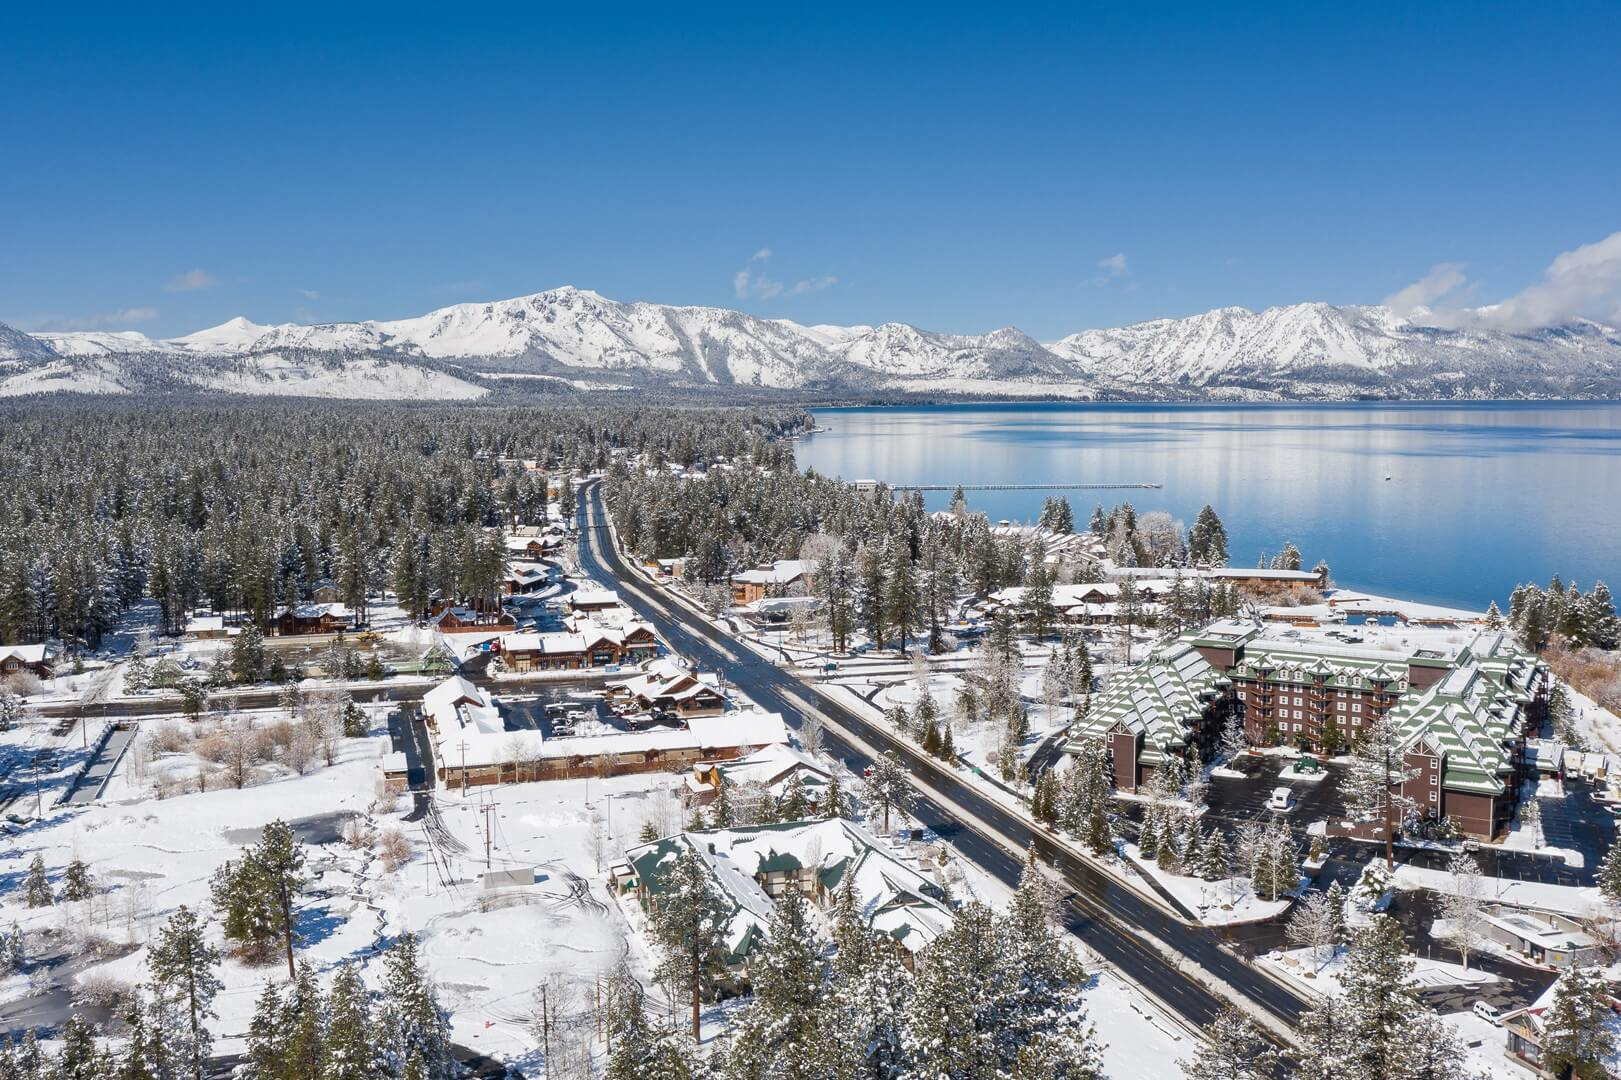 Aerial view of South Lake Tahoe California after a snowstorm